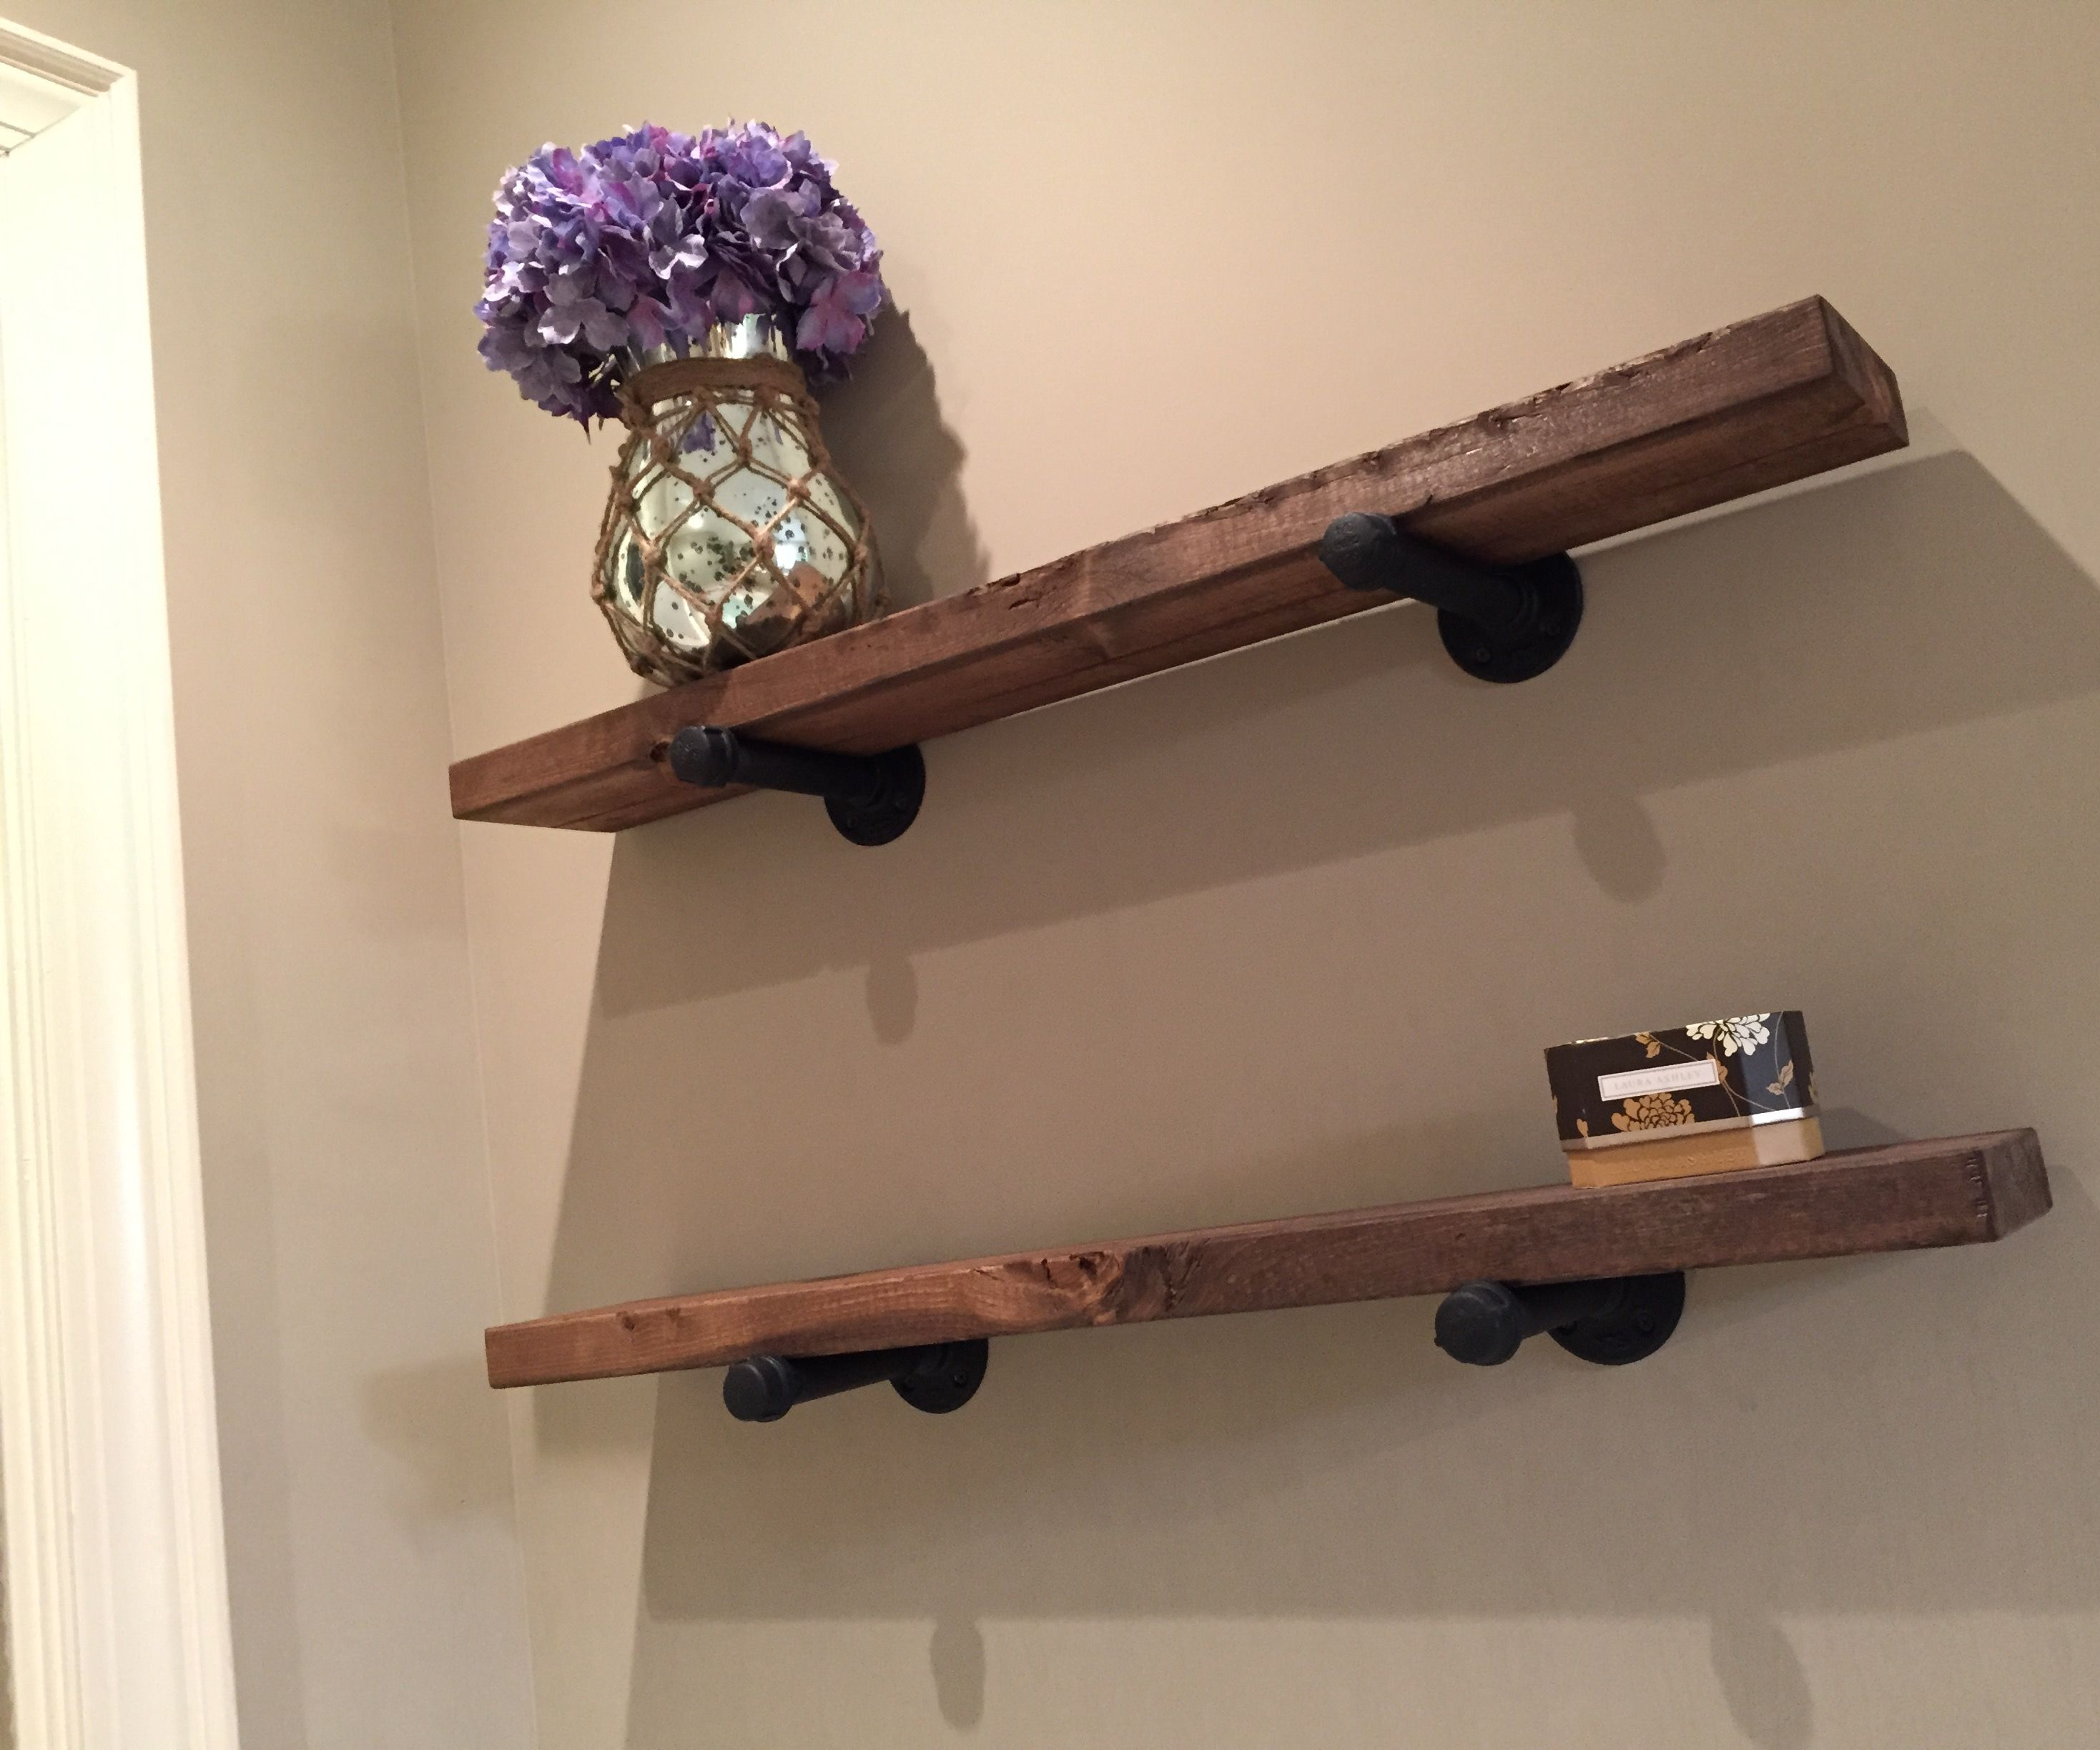 Simple Iron & Wood Shelves